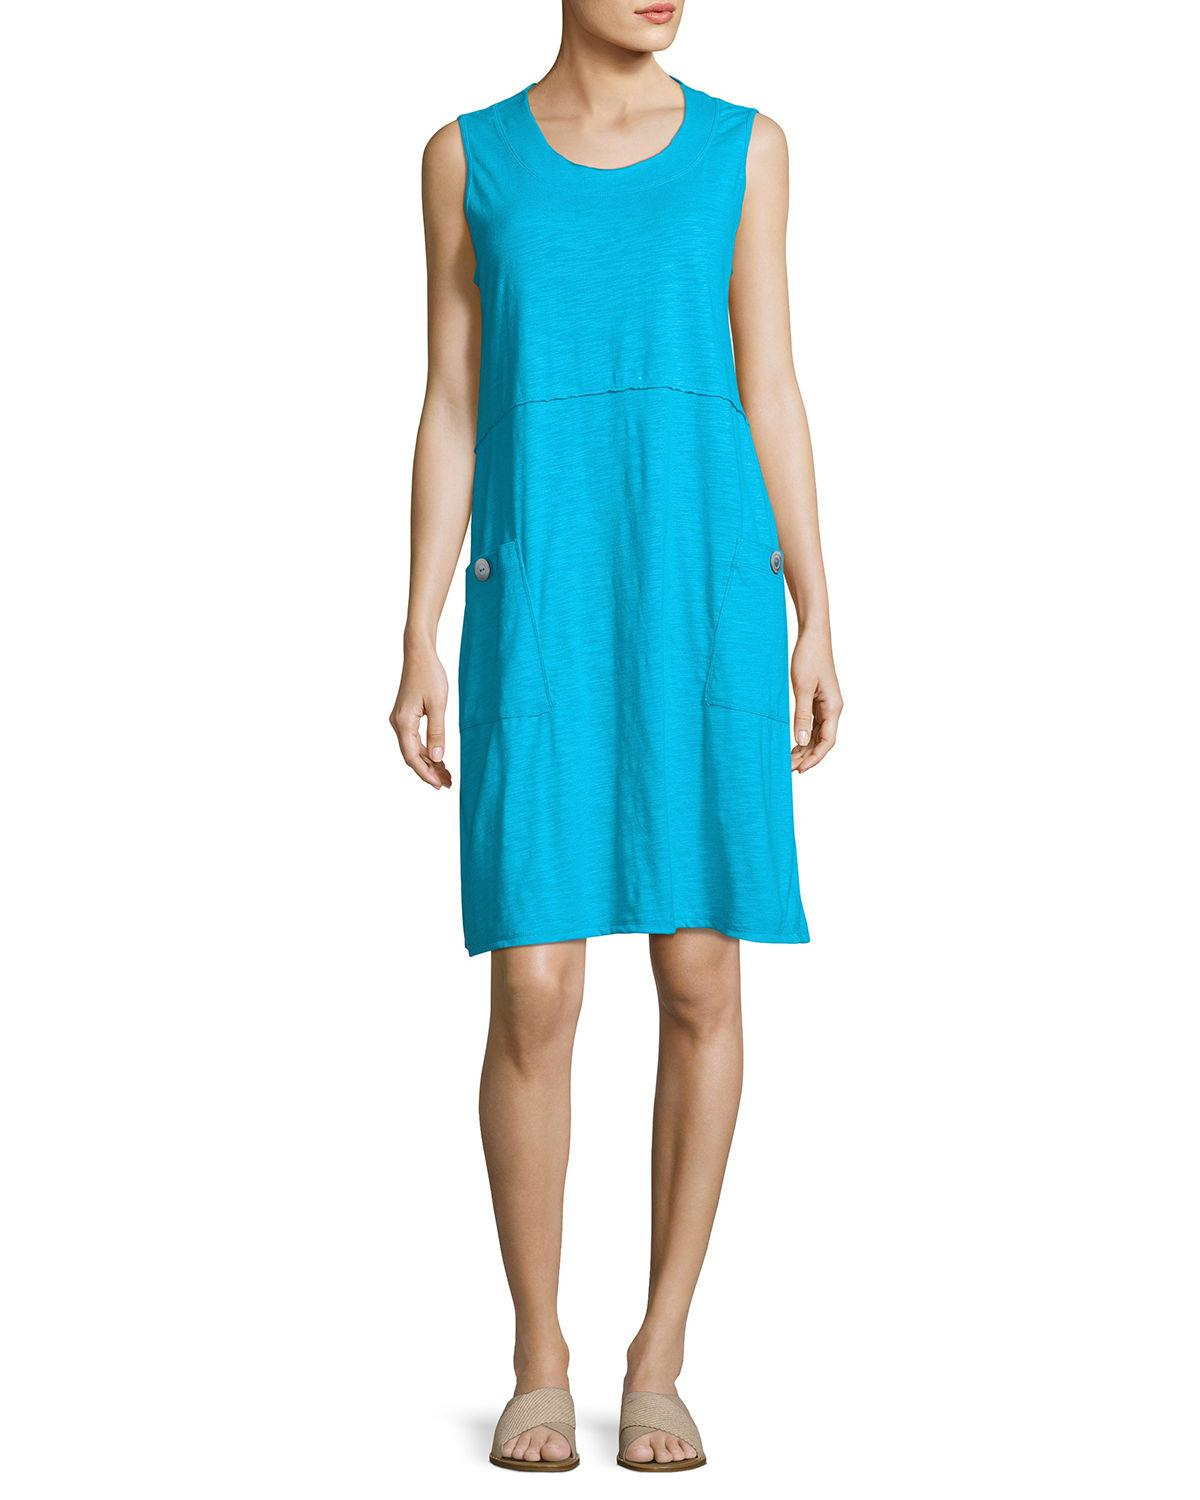 Lyst - Neon Buddha Napa Patch-pocket Jersey Dress in Blue